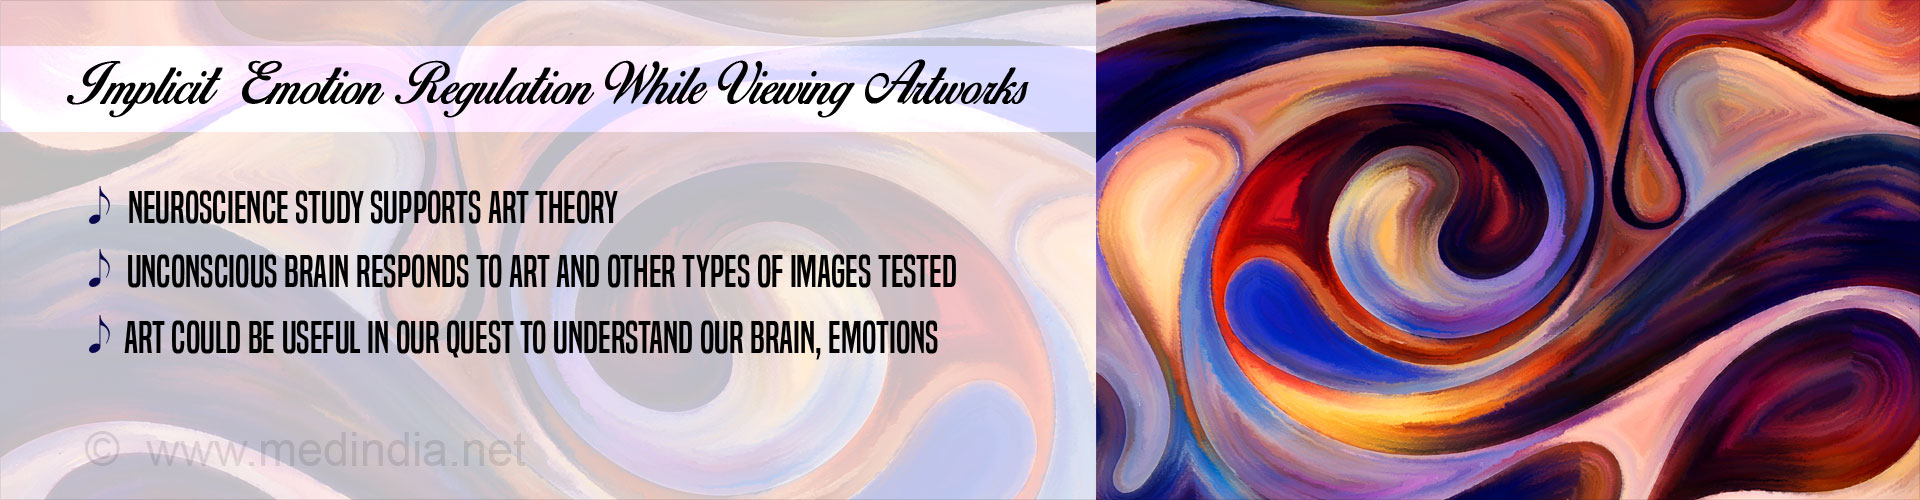 Brain Reacts Differently to Artwork and Real-life Images